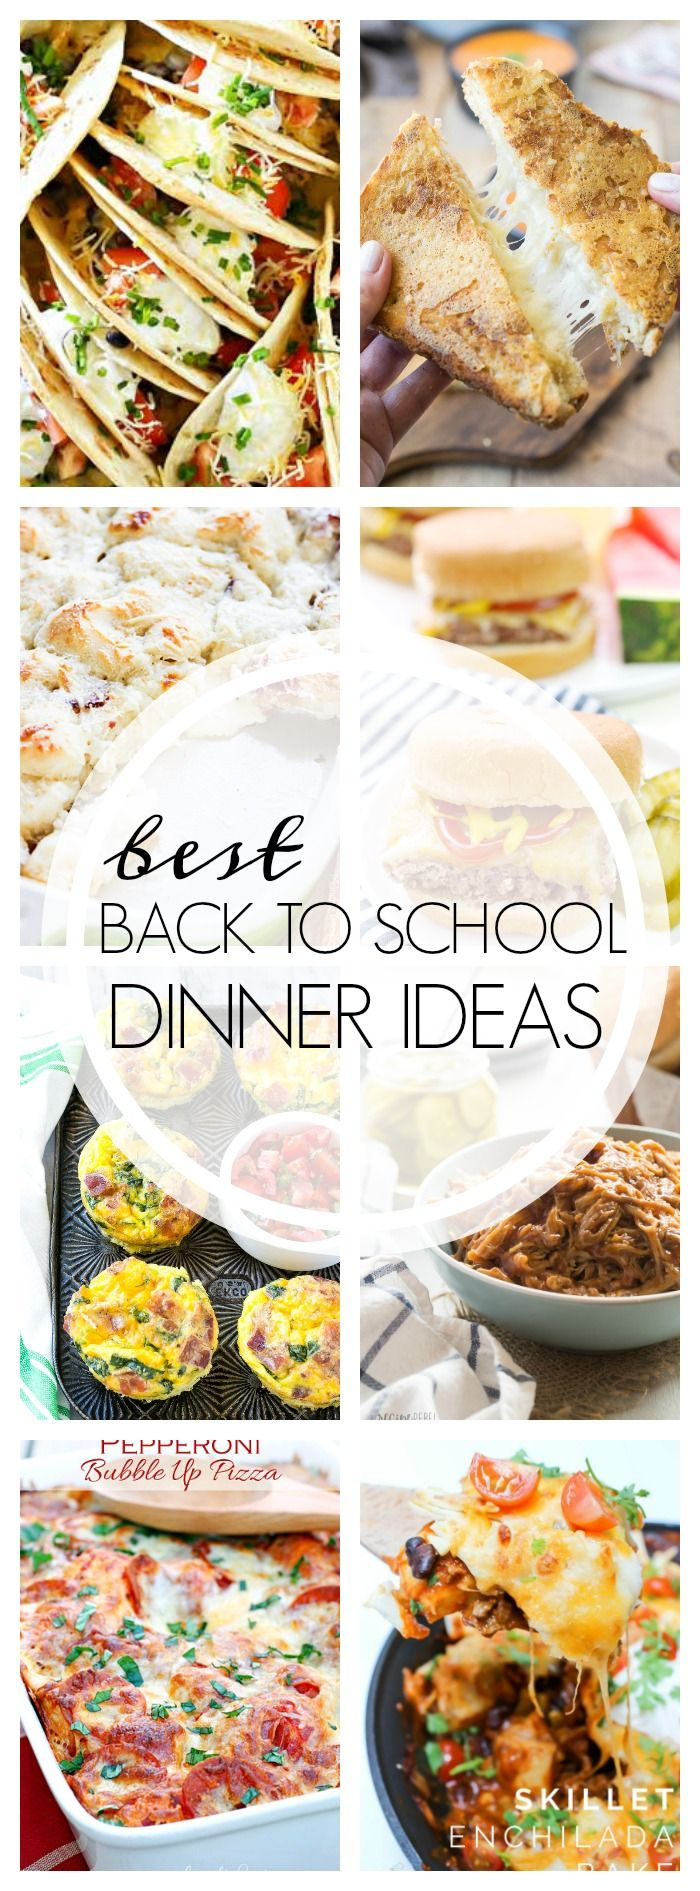 I am sharing over 20 Easy Dinner Recipes that your family will love, especially during this busy time of year when school and sports dominate your schedule!